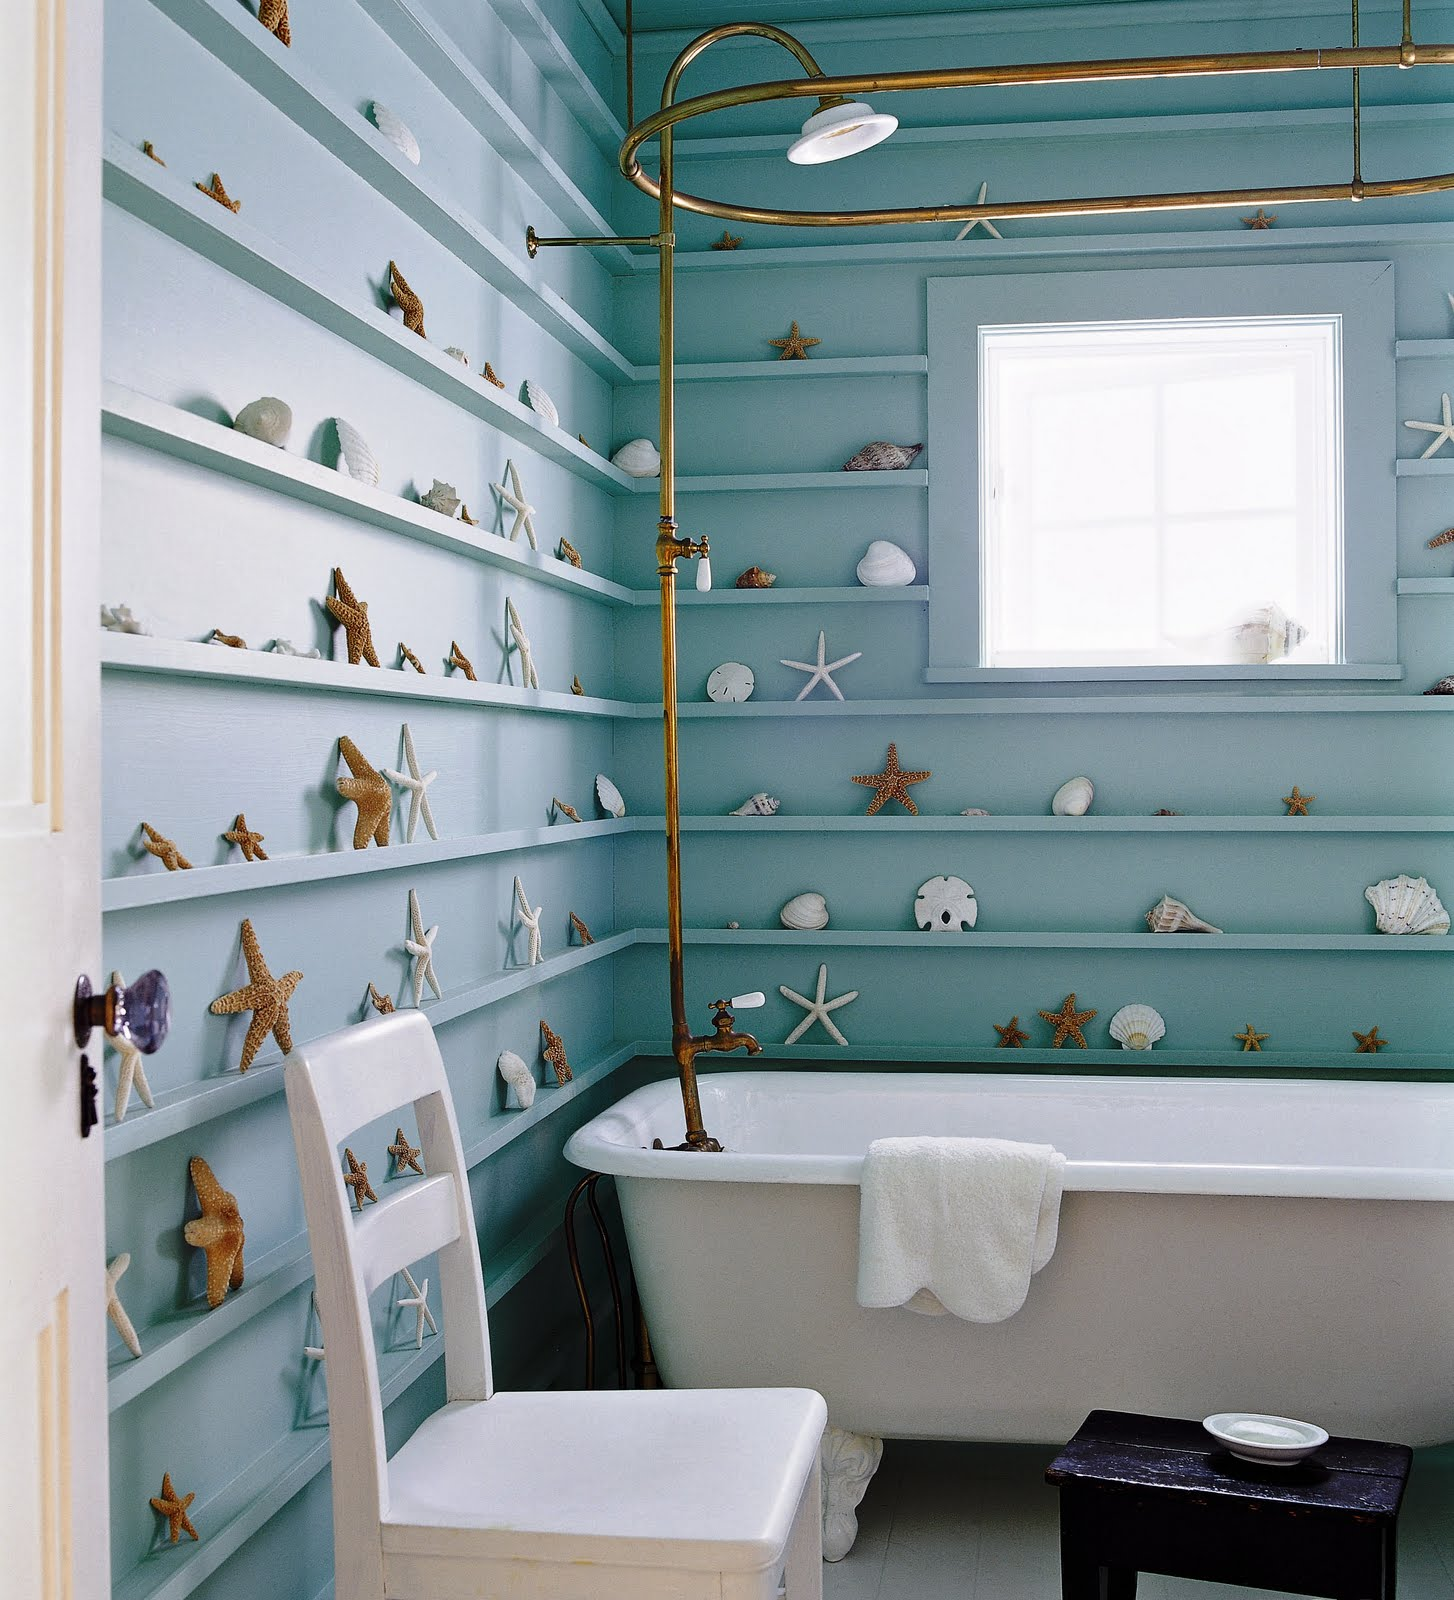 Ez decorating know how bathroom designs the nautical for Bathroom ideas nautical